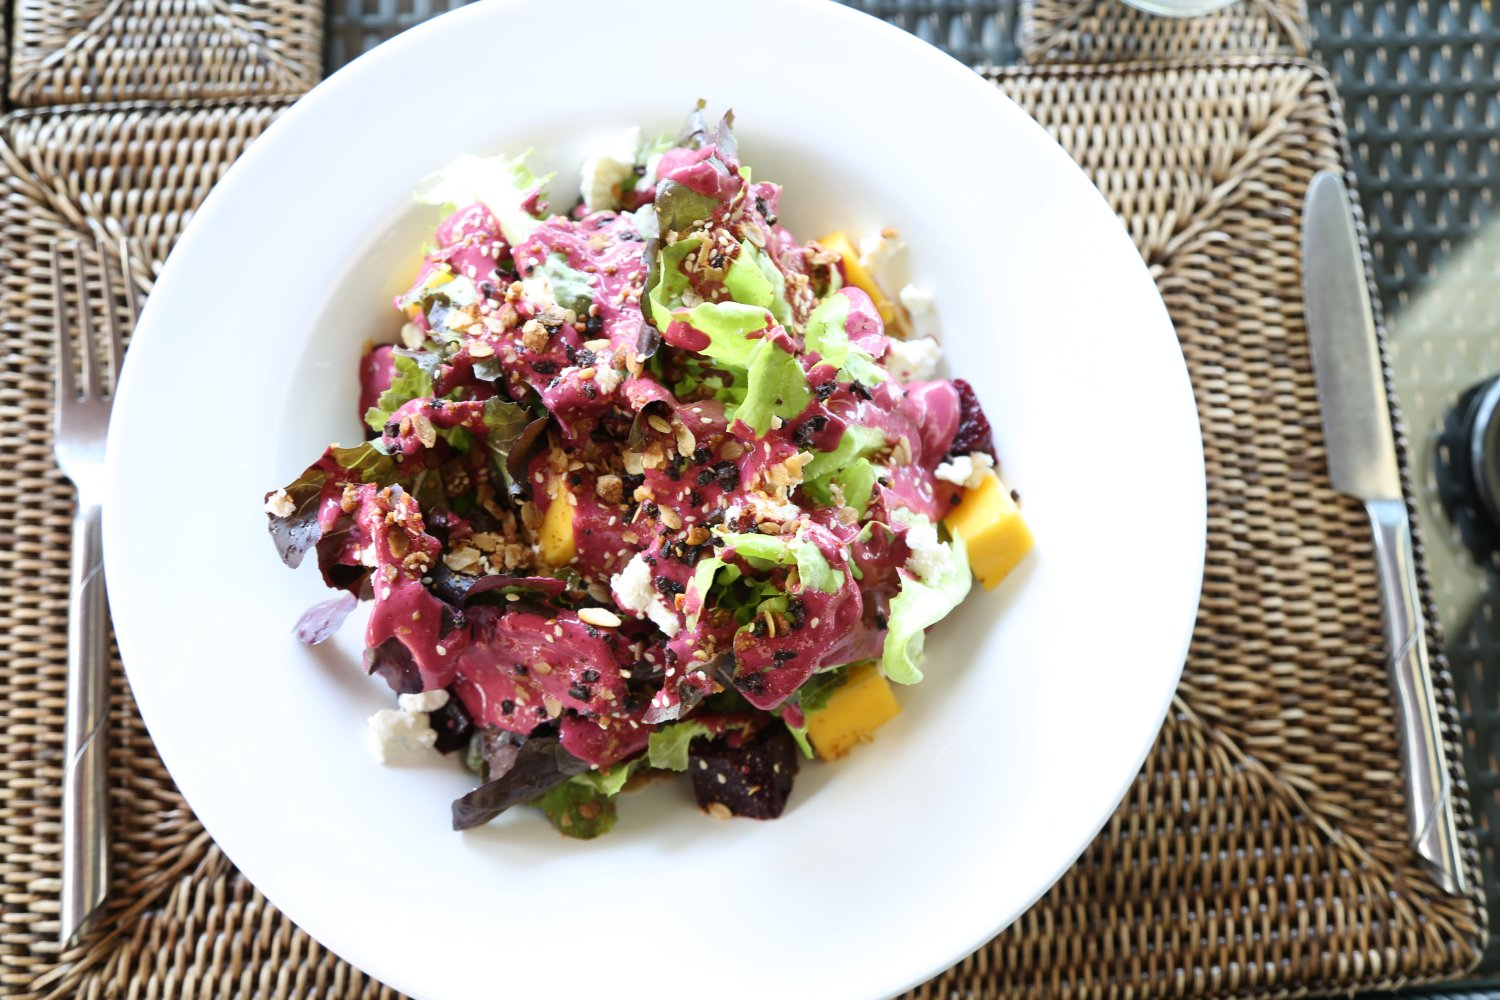 Delicious beetroot, mango and lettuce salad, poolside